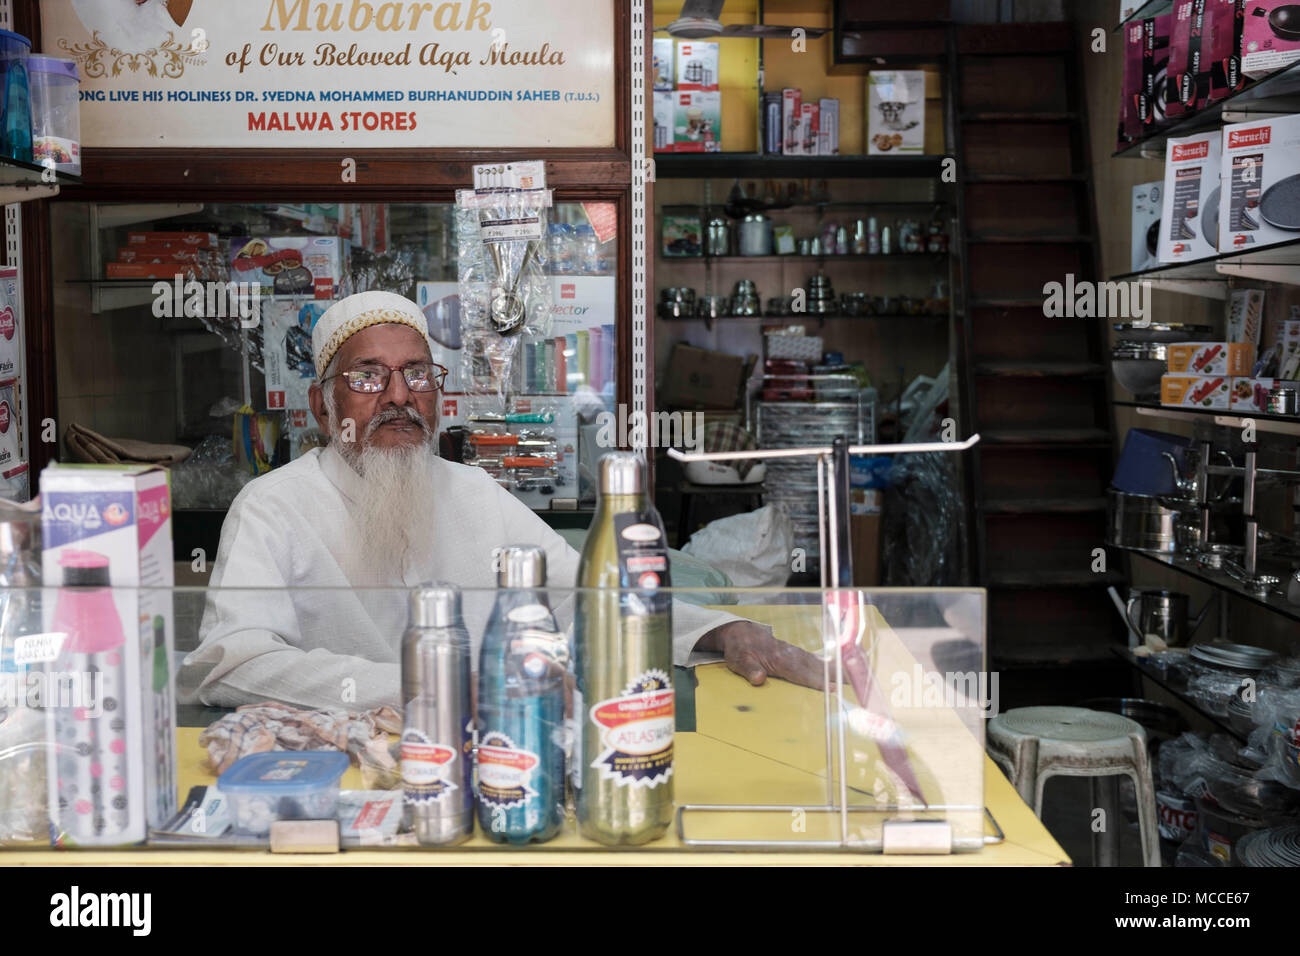 Un musulman barbu vendeur du magasin dans un magasin à Mumbai Photo Stock